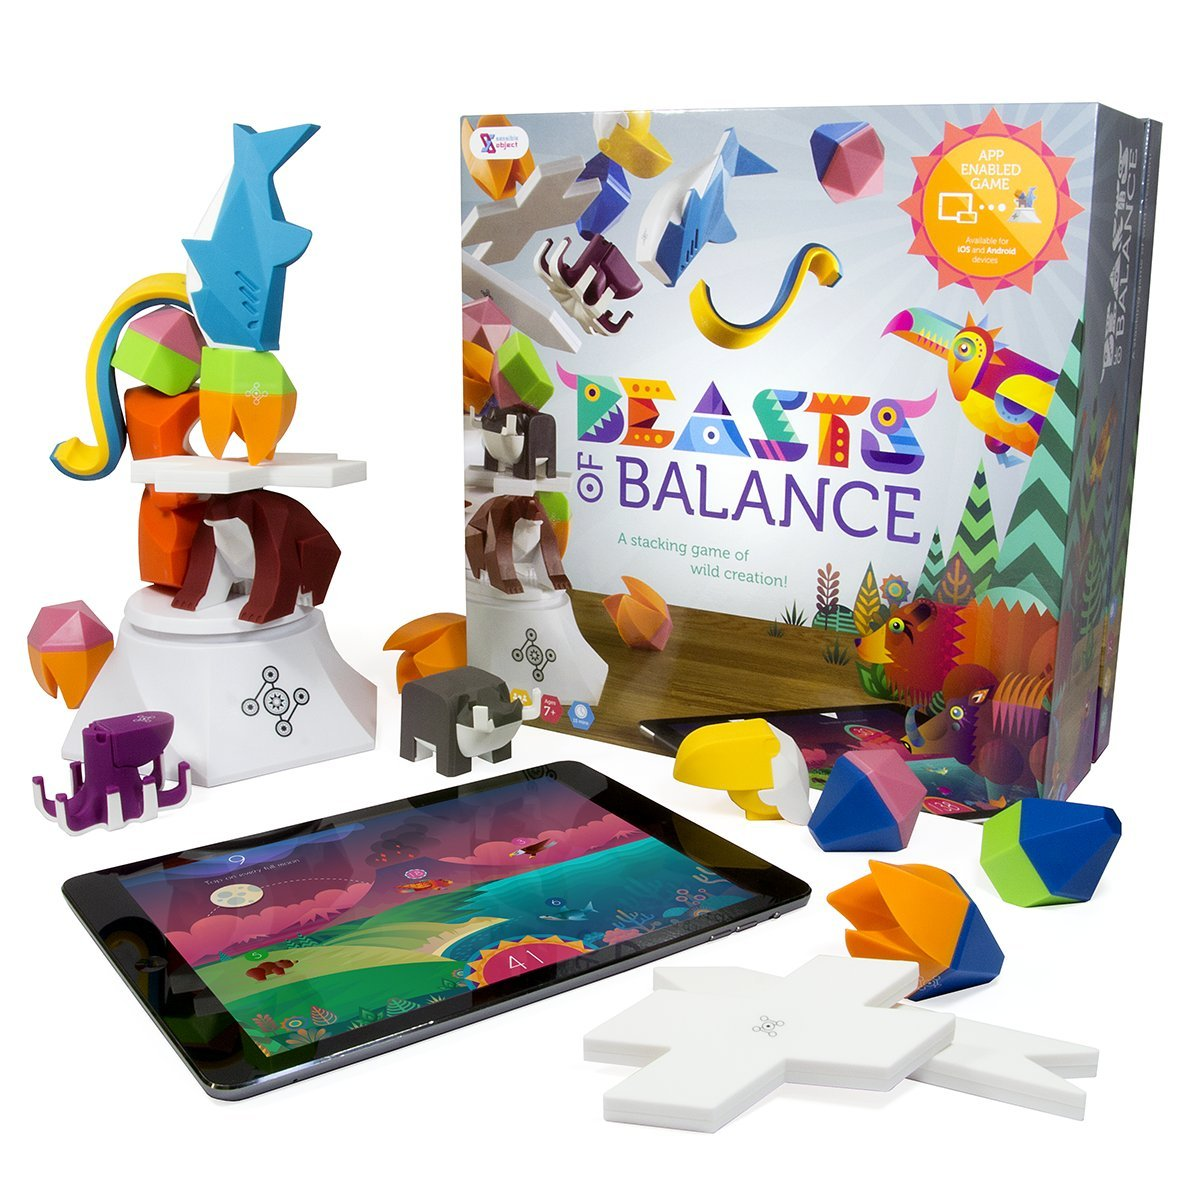 Beasts of Balance - A Digital Tabletop Hybrid Family Stacking Game For Ages 7+